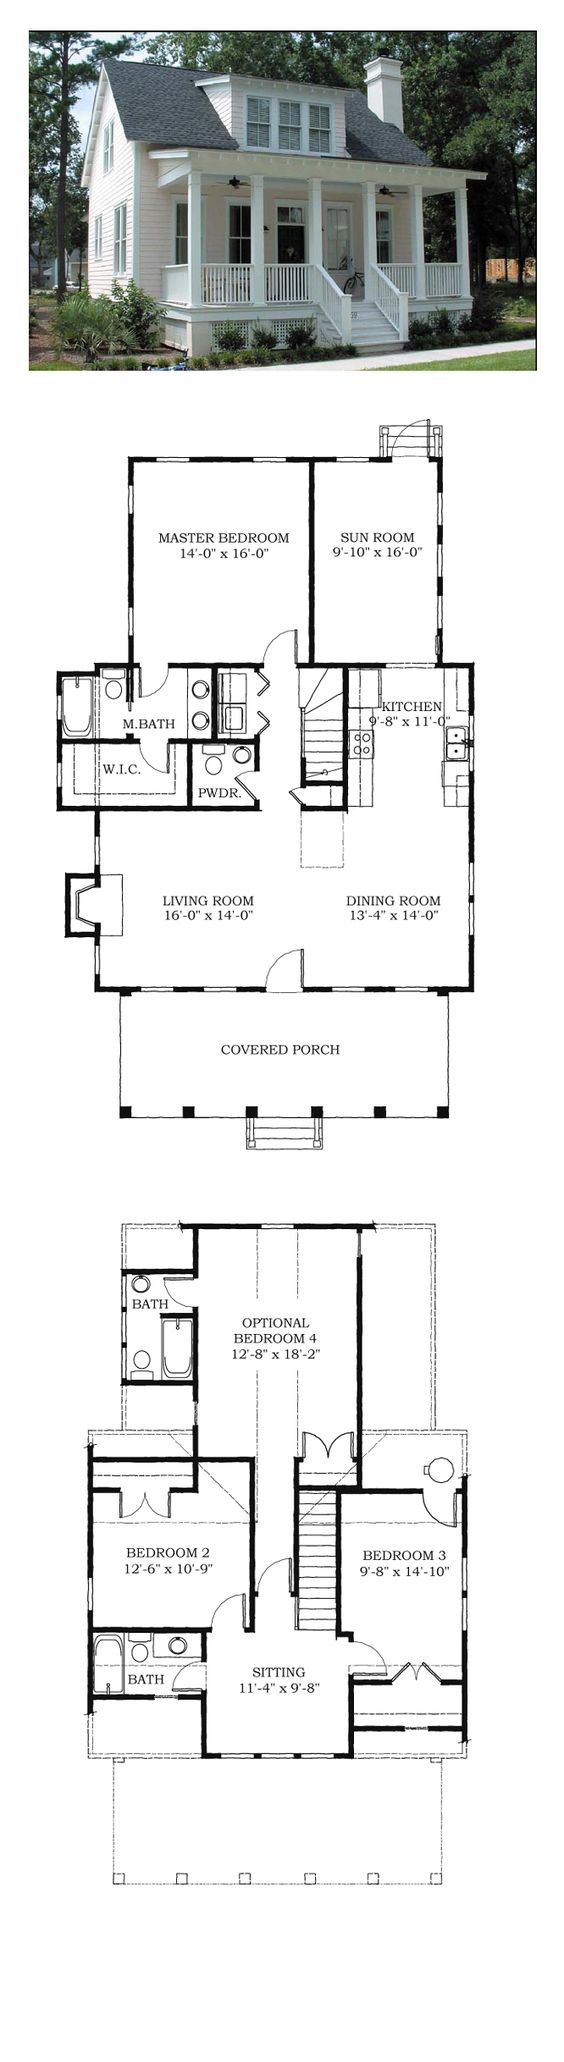 COOL House Plan ID: chp-38703 | Total Living Area: 1783 sq. ft., 4 bedrooms and 3.5 bathrooms. #houseplan #carolinahome